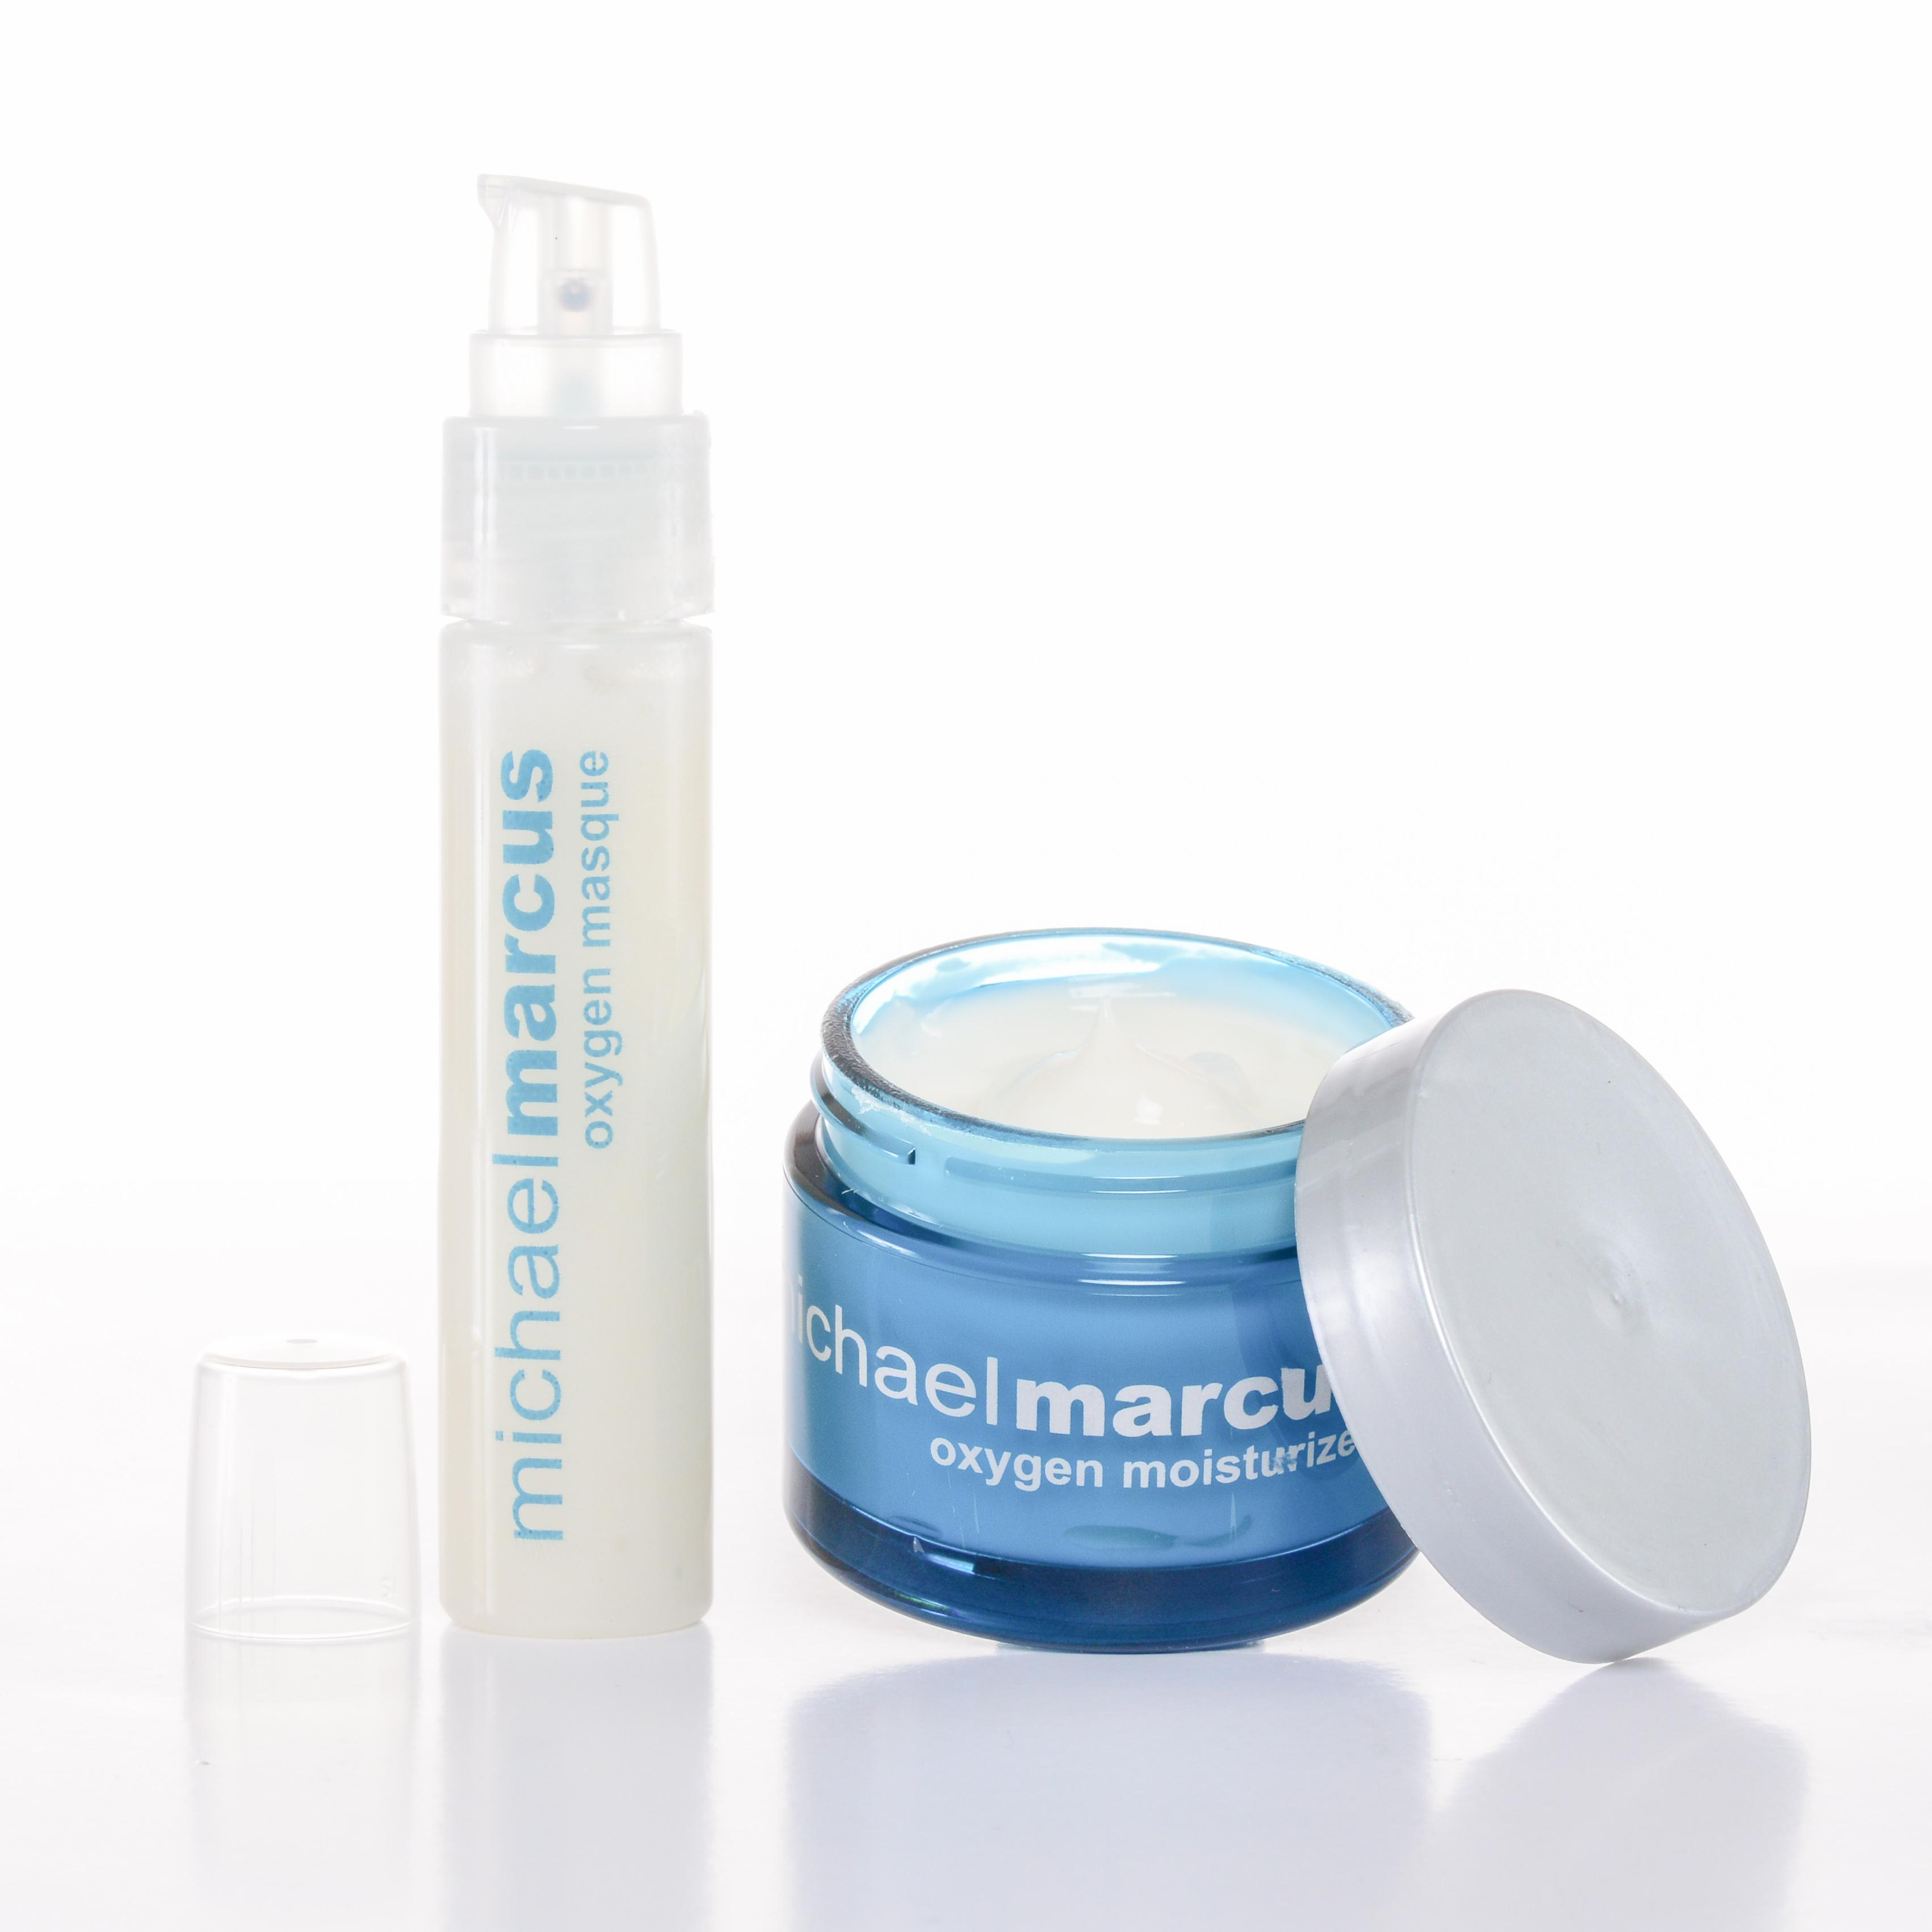 Michael Marcus Oxygen Duo-Masque(1 oz) and Moisturizer (1.7 oz)